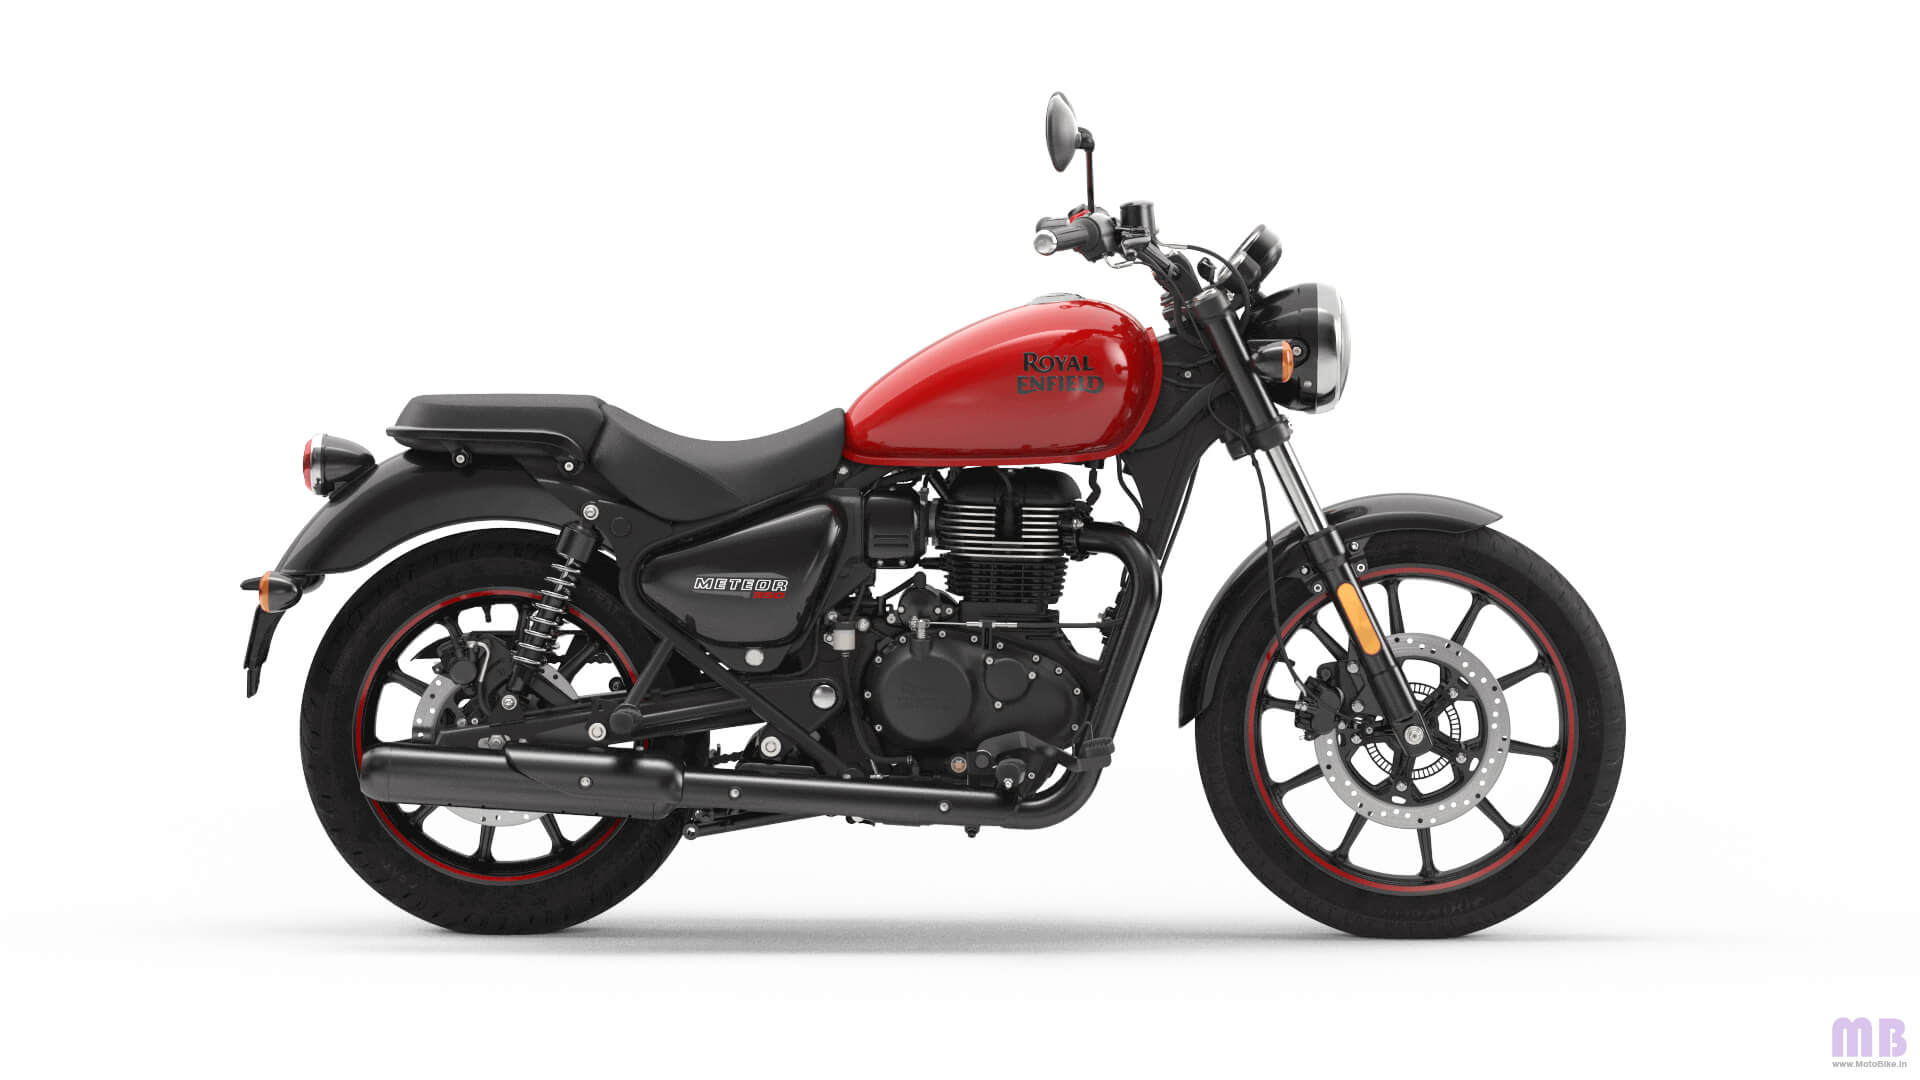 Royal Enfield Meteor 350 - Fireball Red